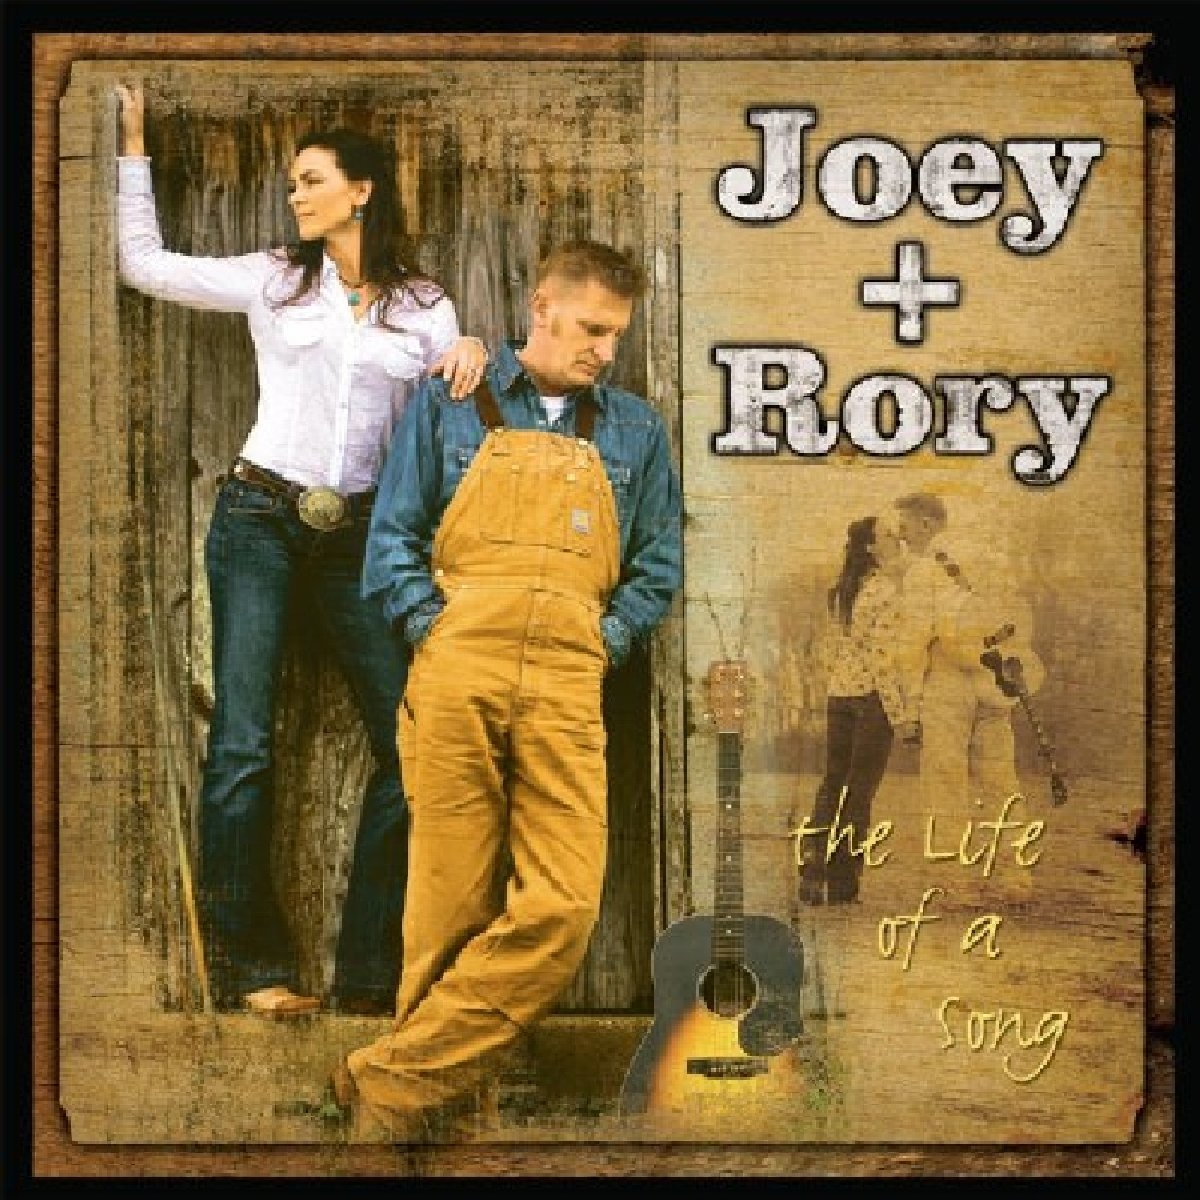 Joey and Rory Cd: Amazon.com